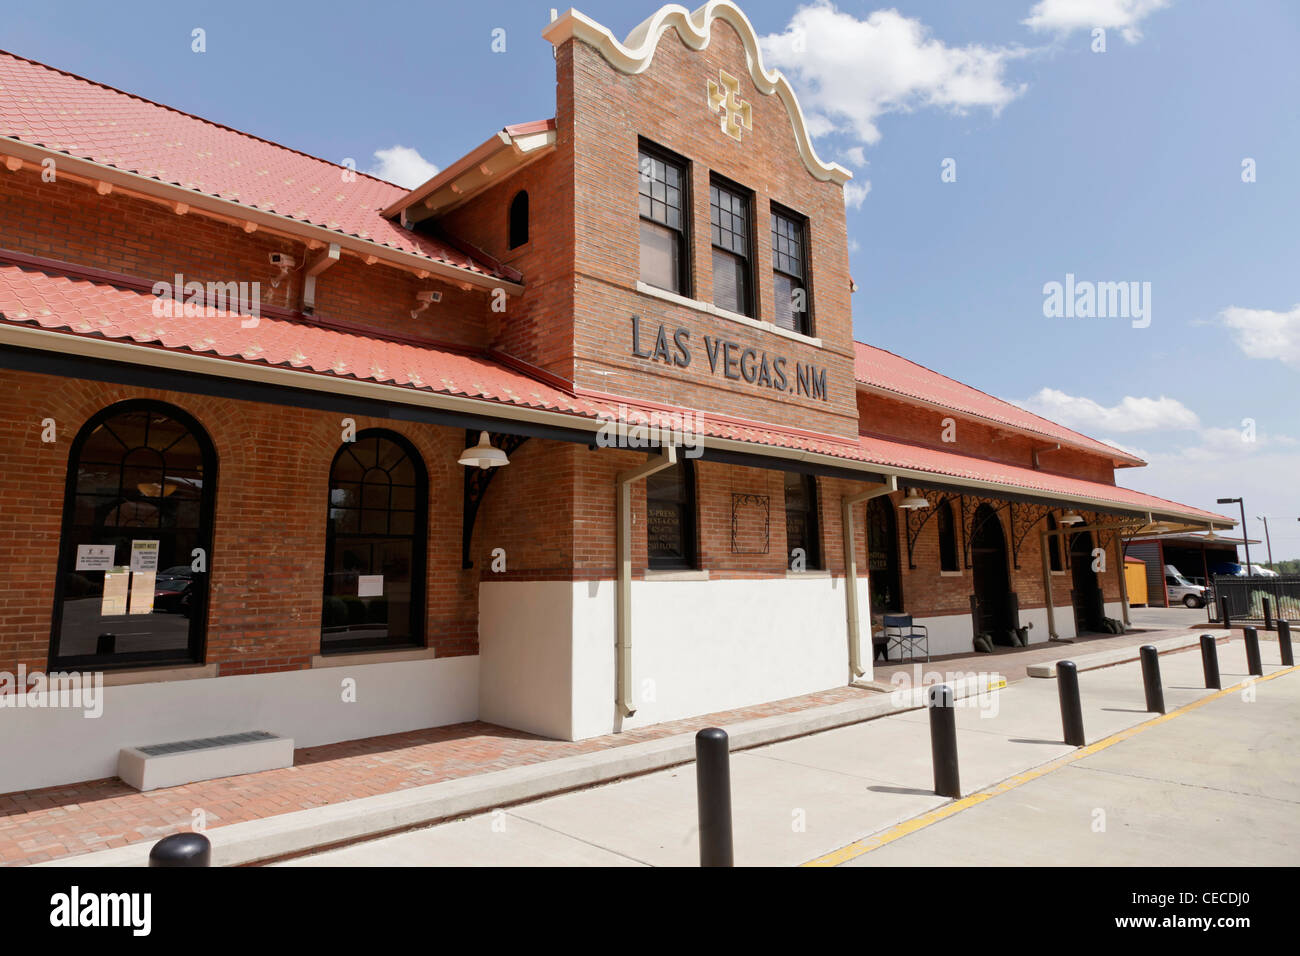 California Mission Style Architecture - Las vegas new mexico united states train station california mission revival style 1898